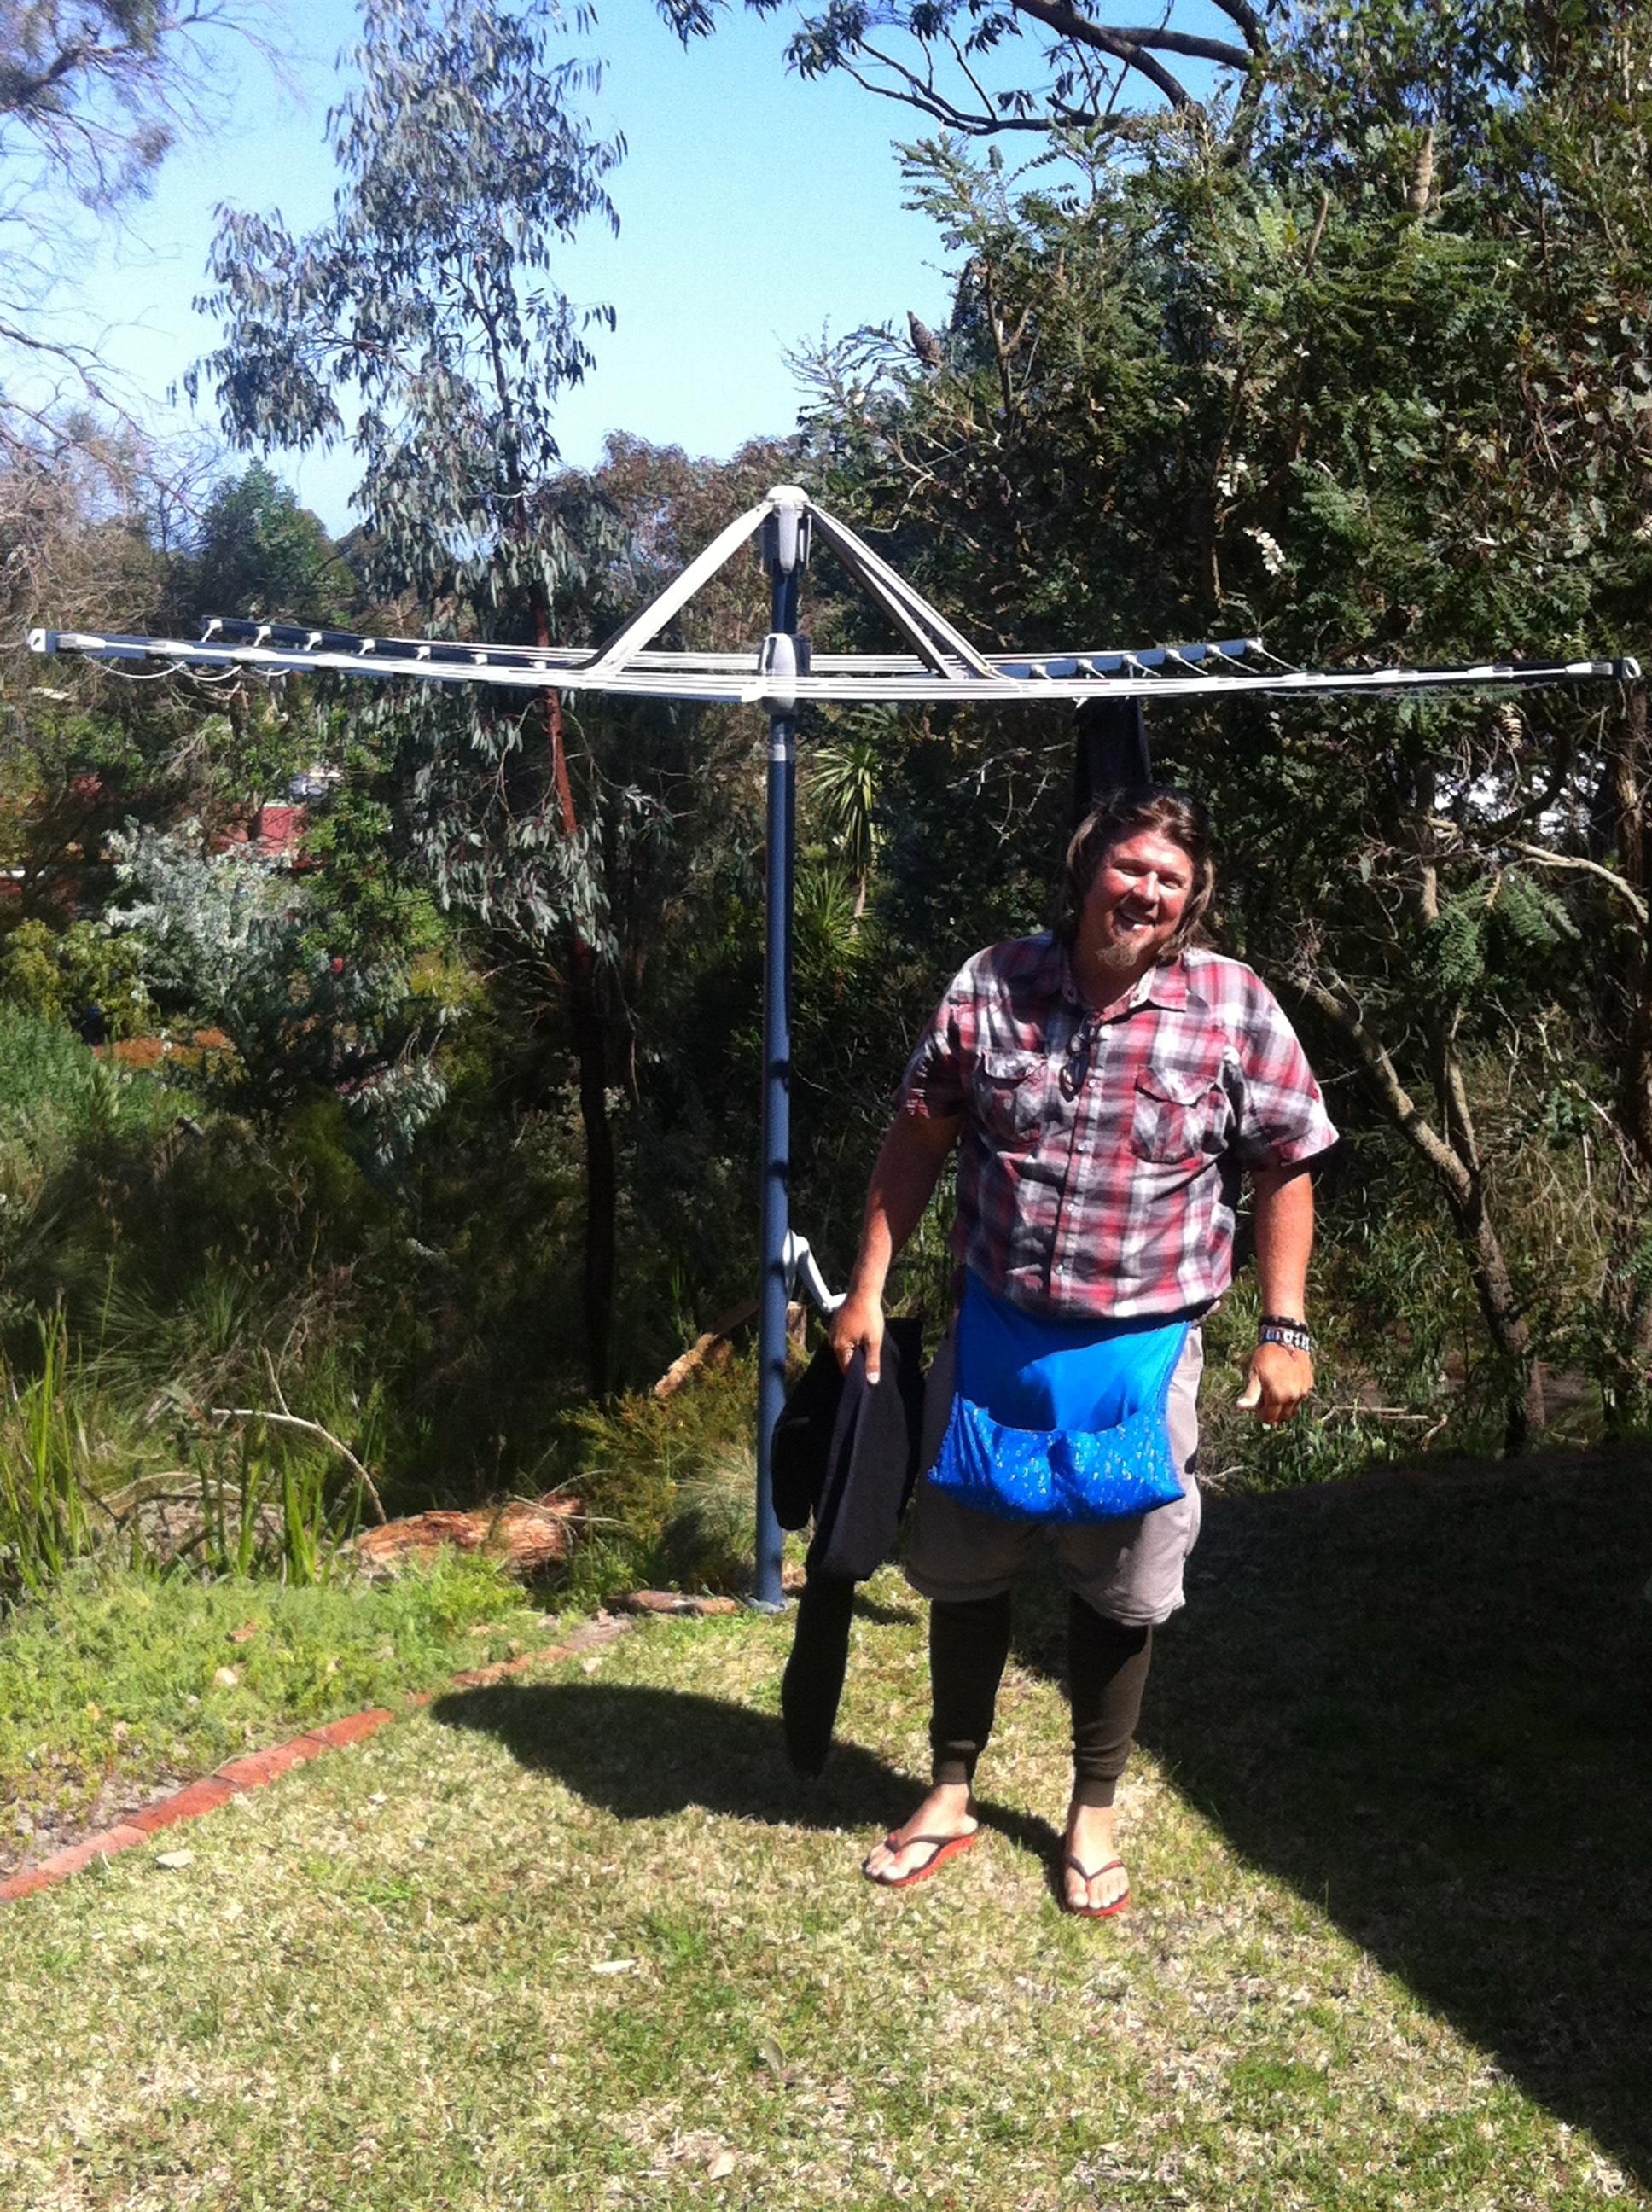 Kev hanging up a quick load of laundry before we hit the cliffs!.....Nice peg holder babe?